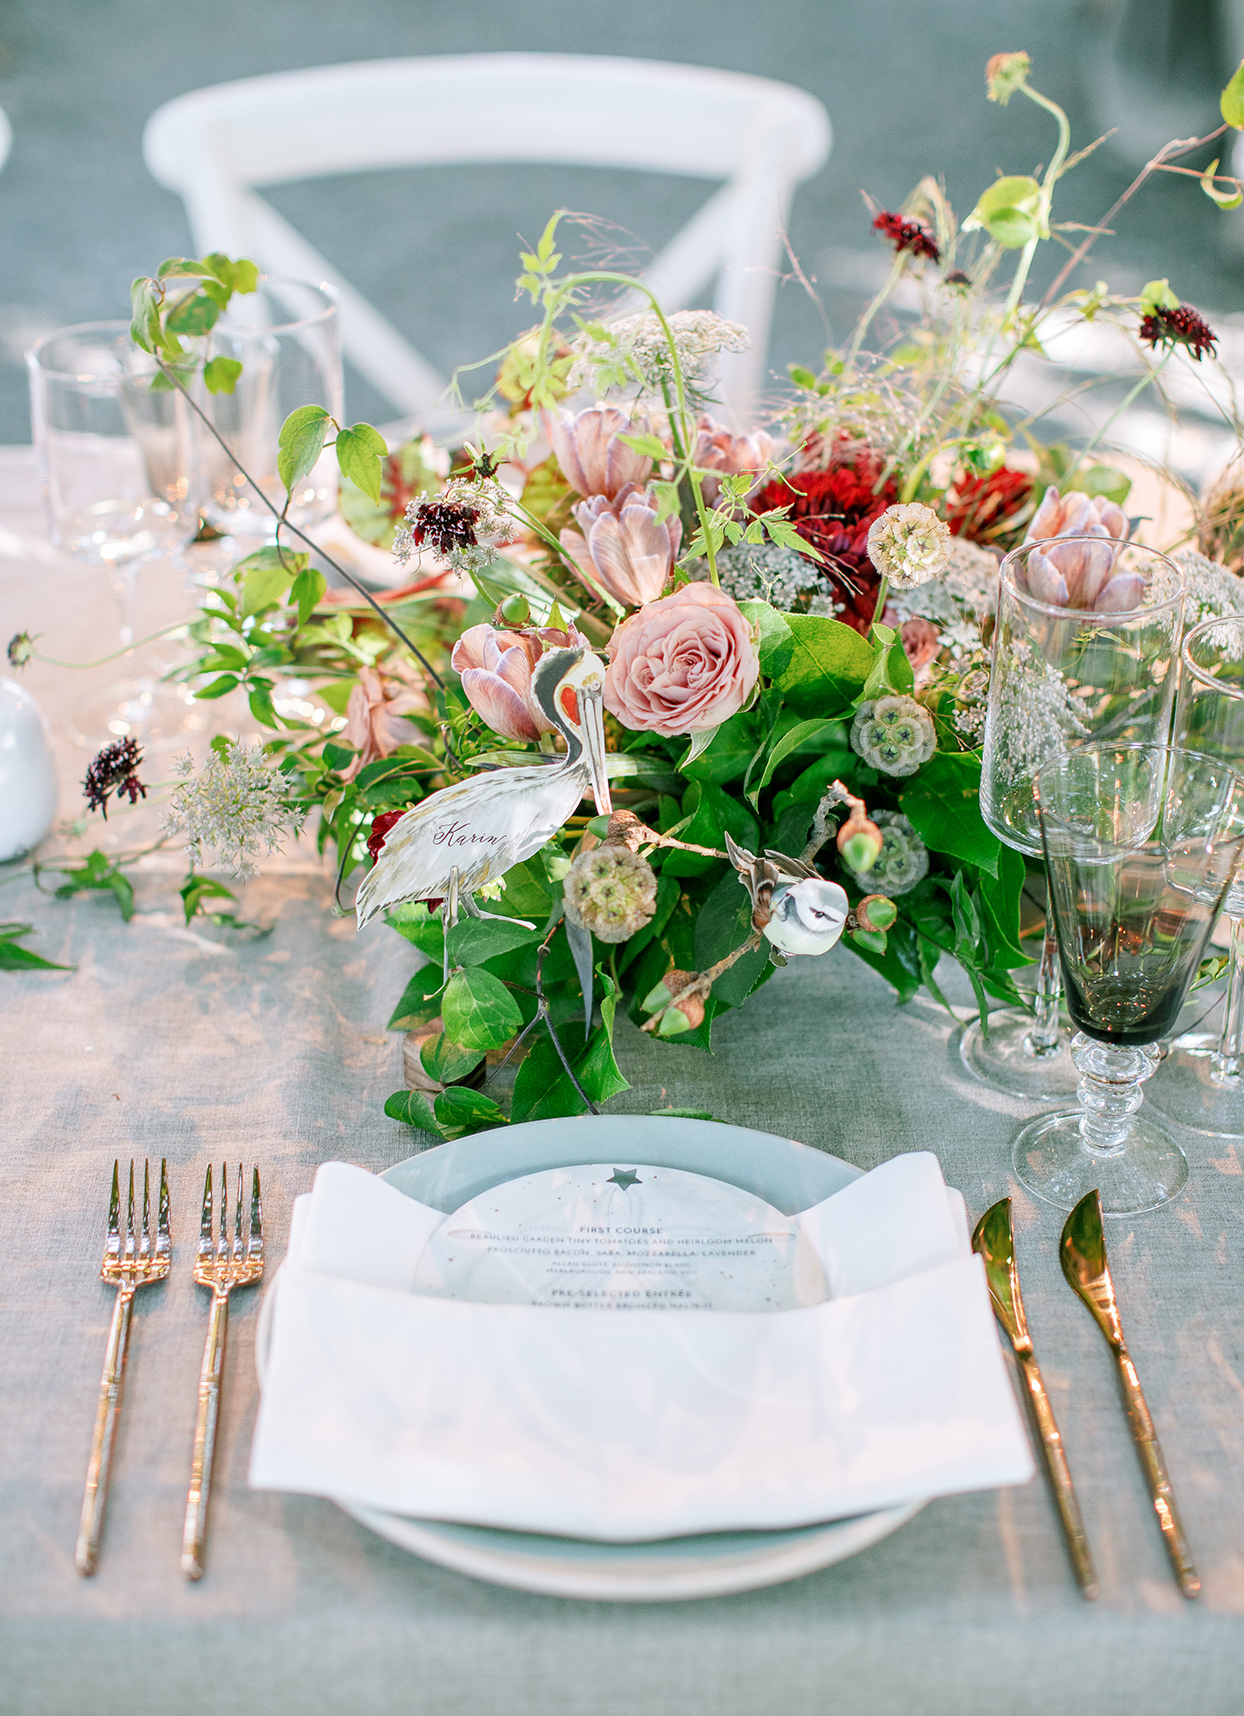 reception place setting with elegant utensils and floral centerpiece